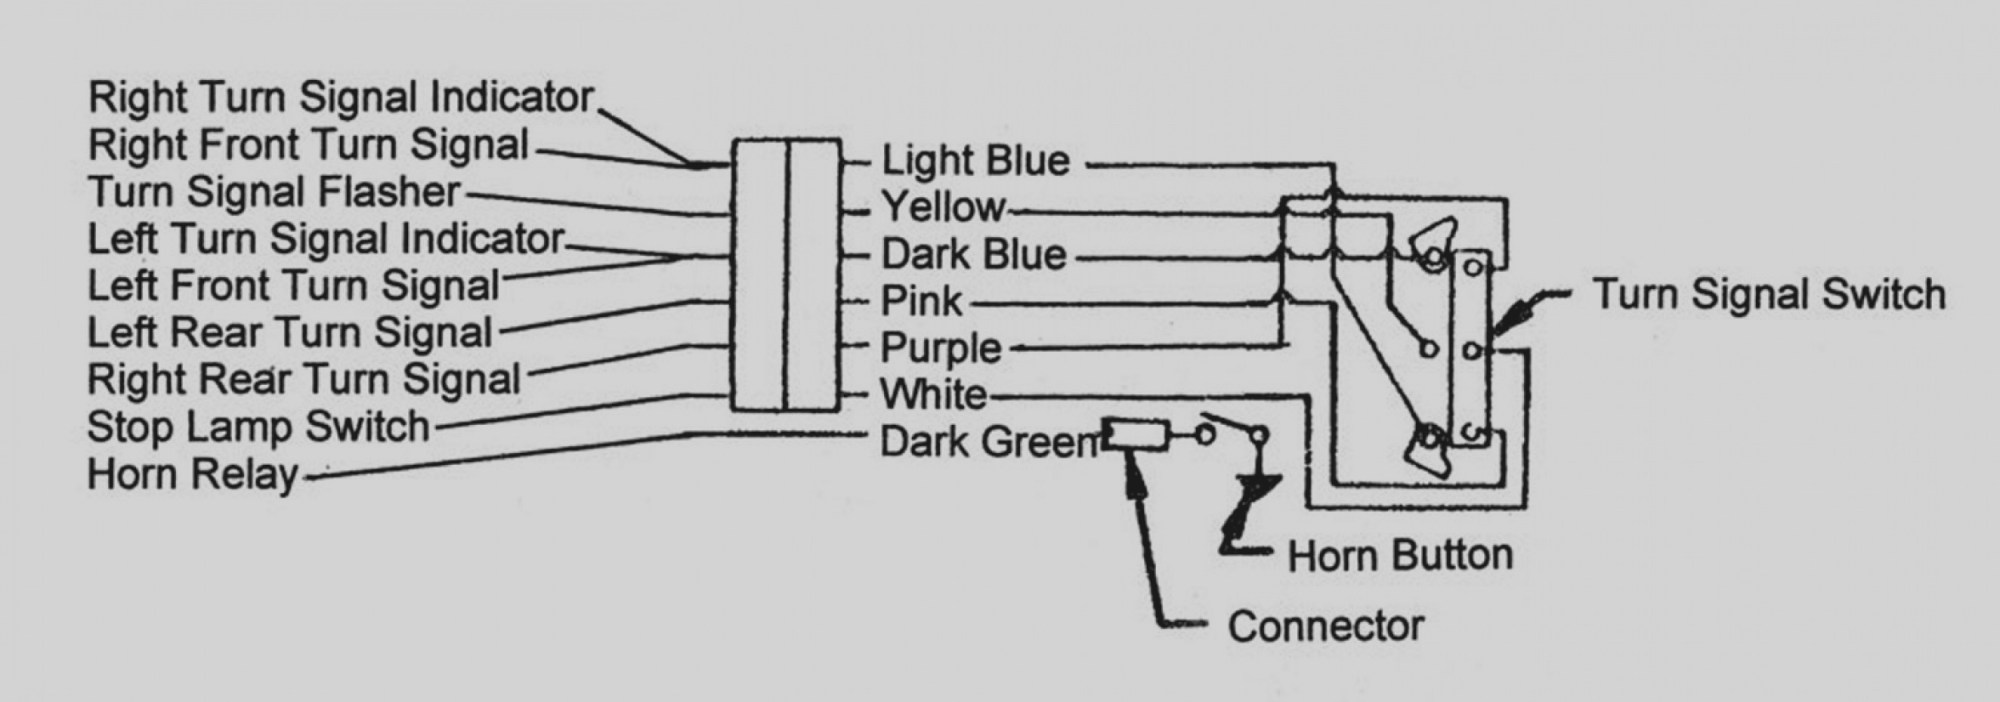 hight resolution of ford turn signal switch wiring wiring diagram for you 1969 ford f100 turn signal switch wiring diagram ford turn signal switch wiring